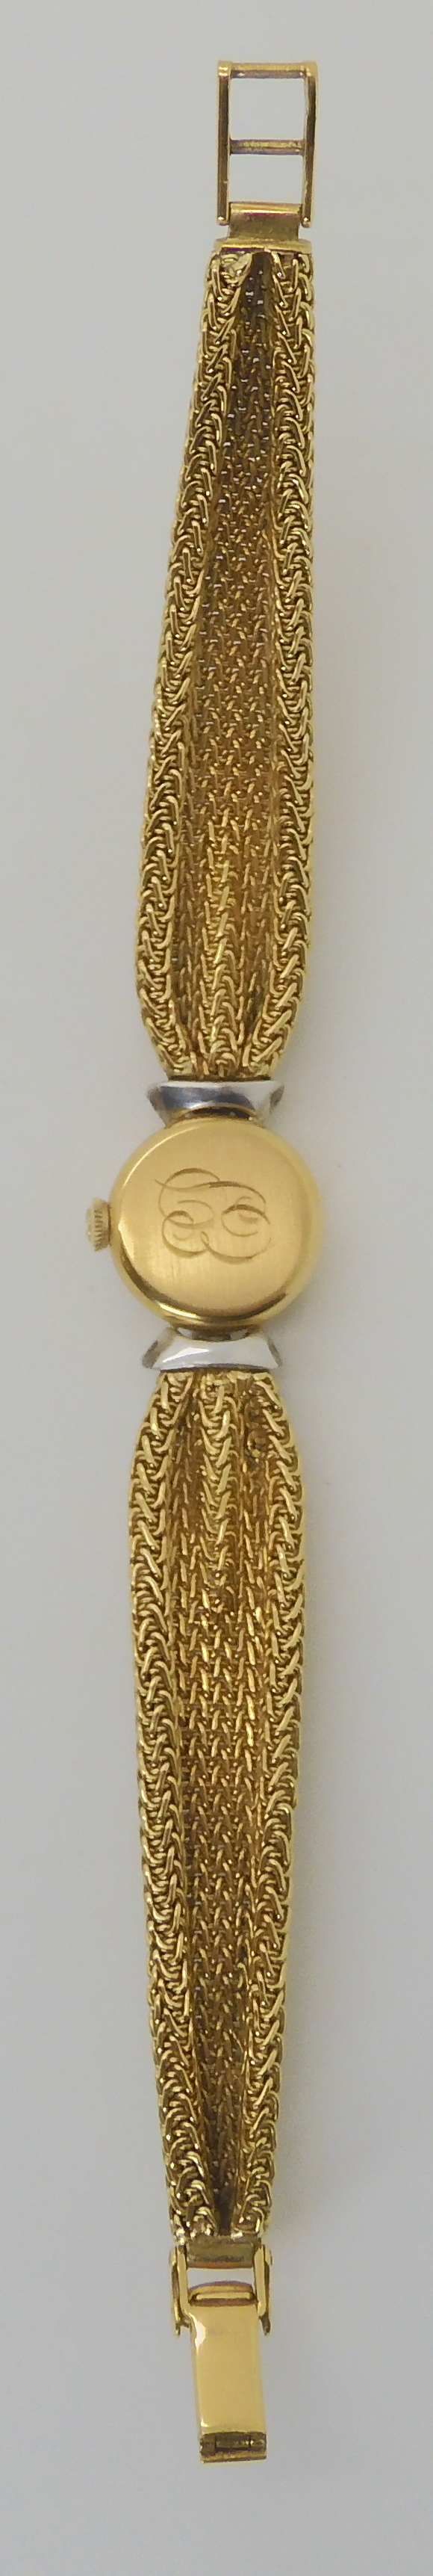 A LADIES 18CT GOLD OMEGA WITH DIAMONDS AND DECORATIVE STRAP the woven mesh strap in puckered to look - Image 4 of 5